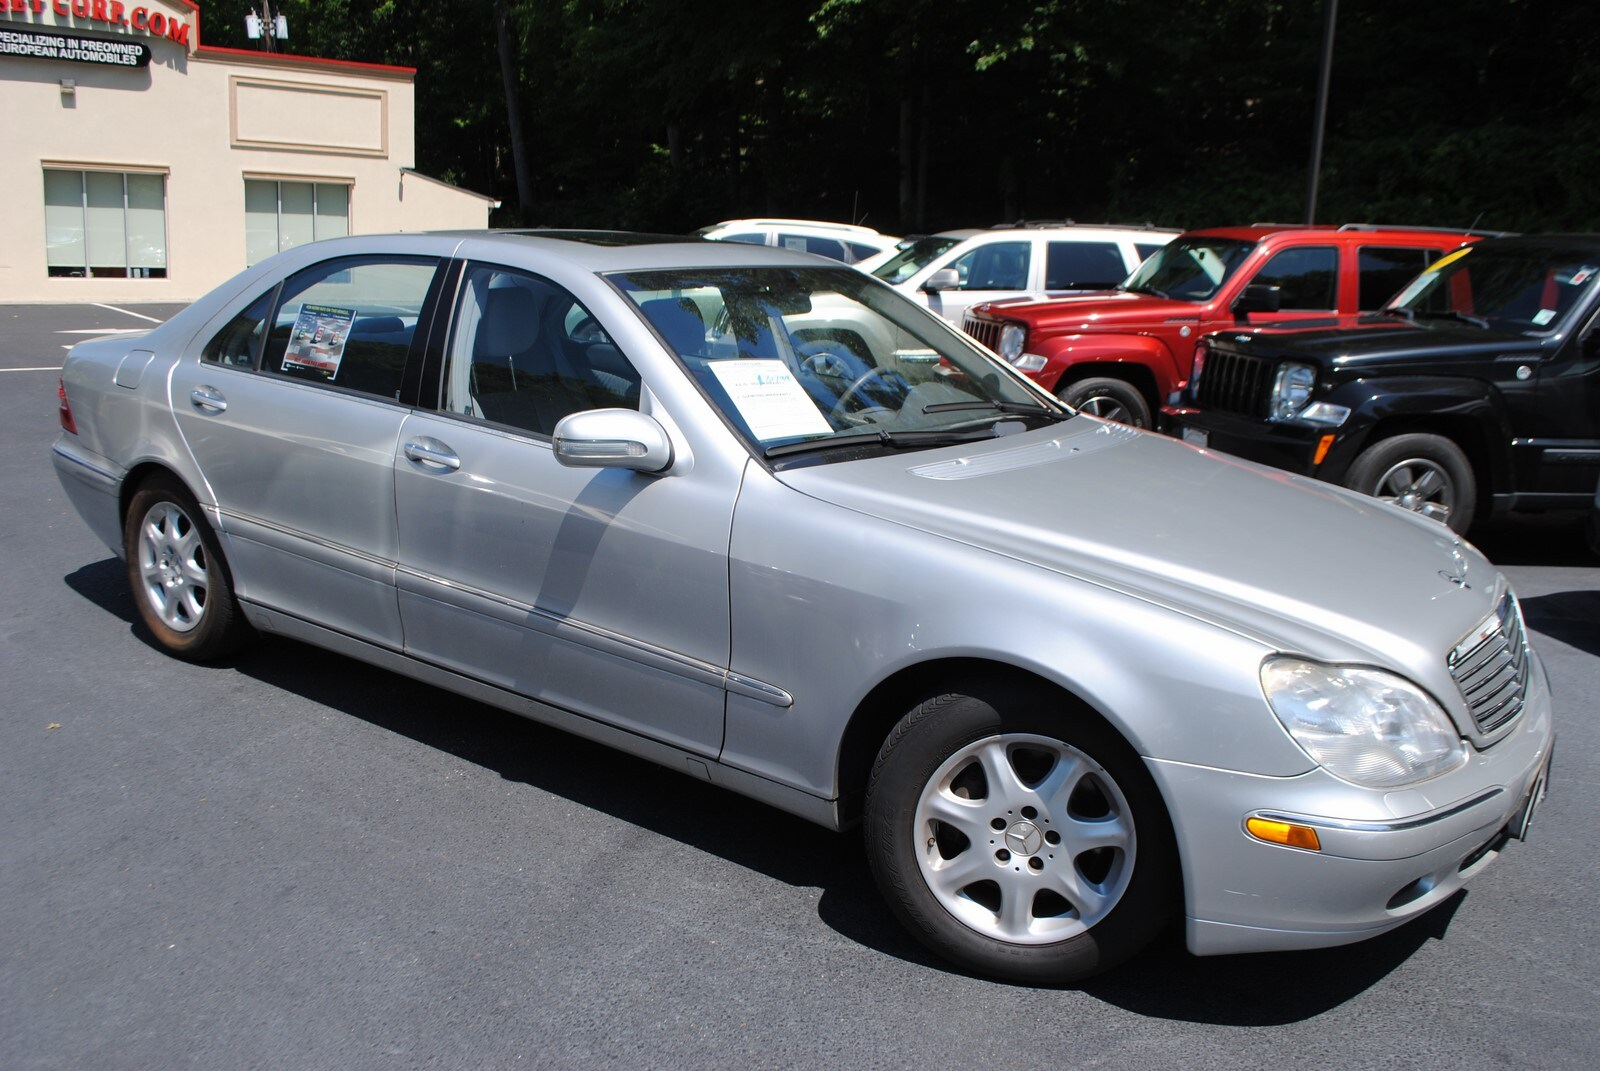 Used 2002 mercedes benz s class for sale west milford nj for Mercedes benz 2002 s500 for sale